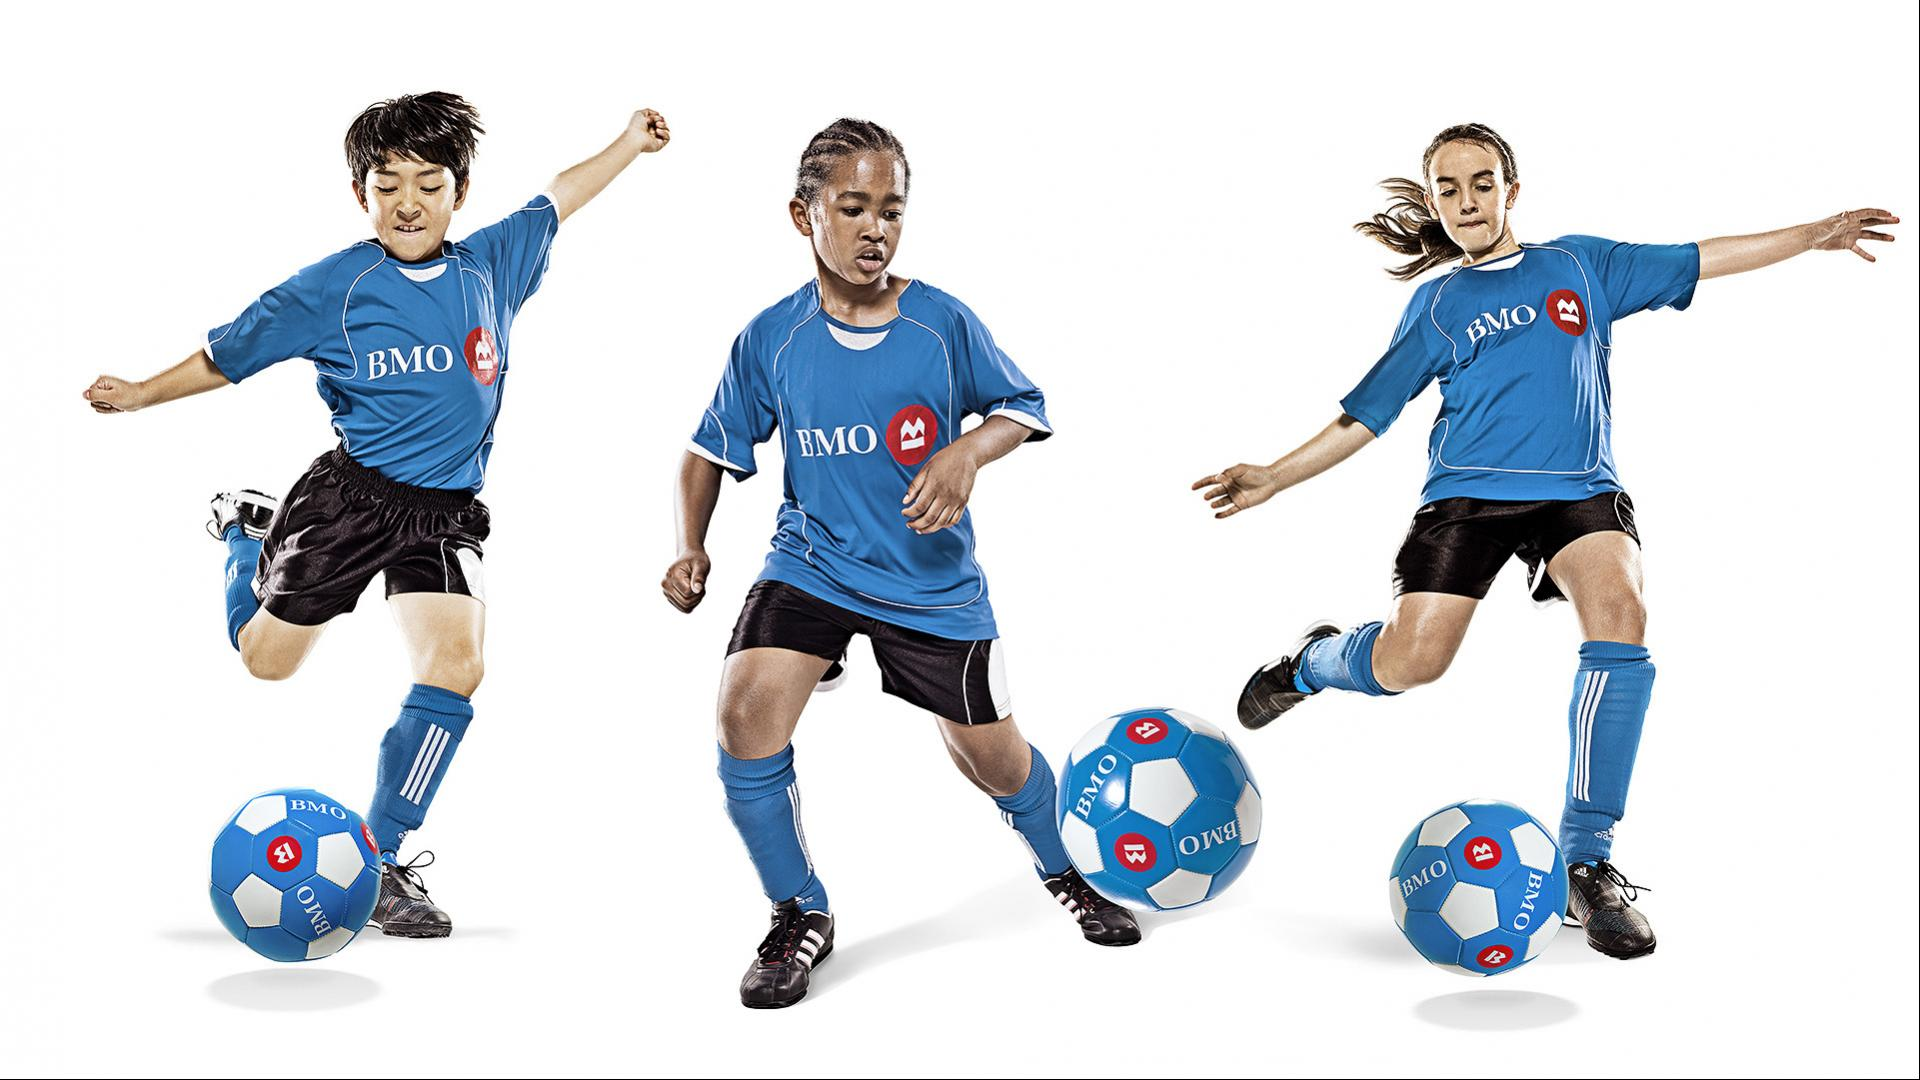 hd-bmo-soccer-kids-1920x1080-jpeg-1920×1080-wallpaper-wp3406789